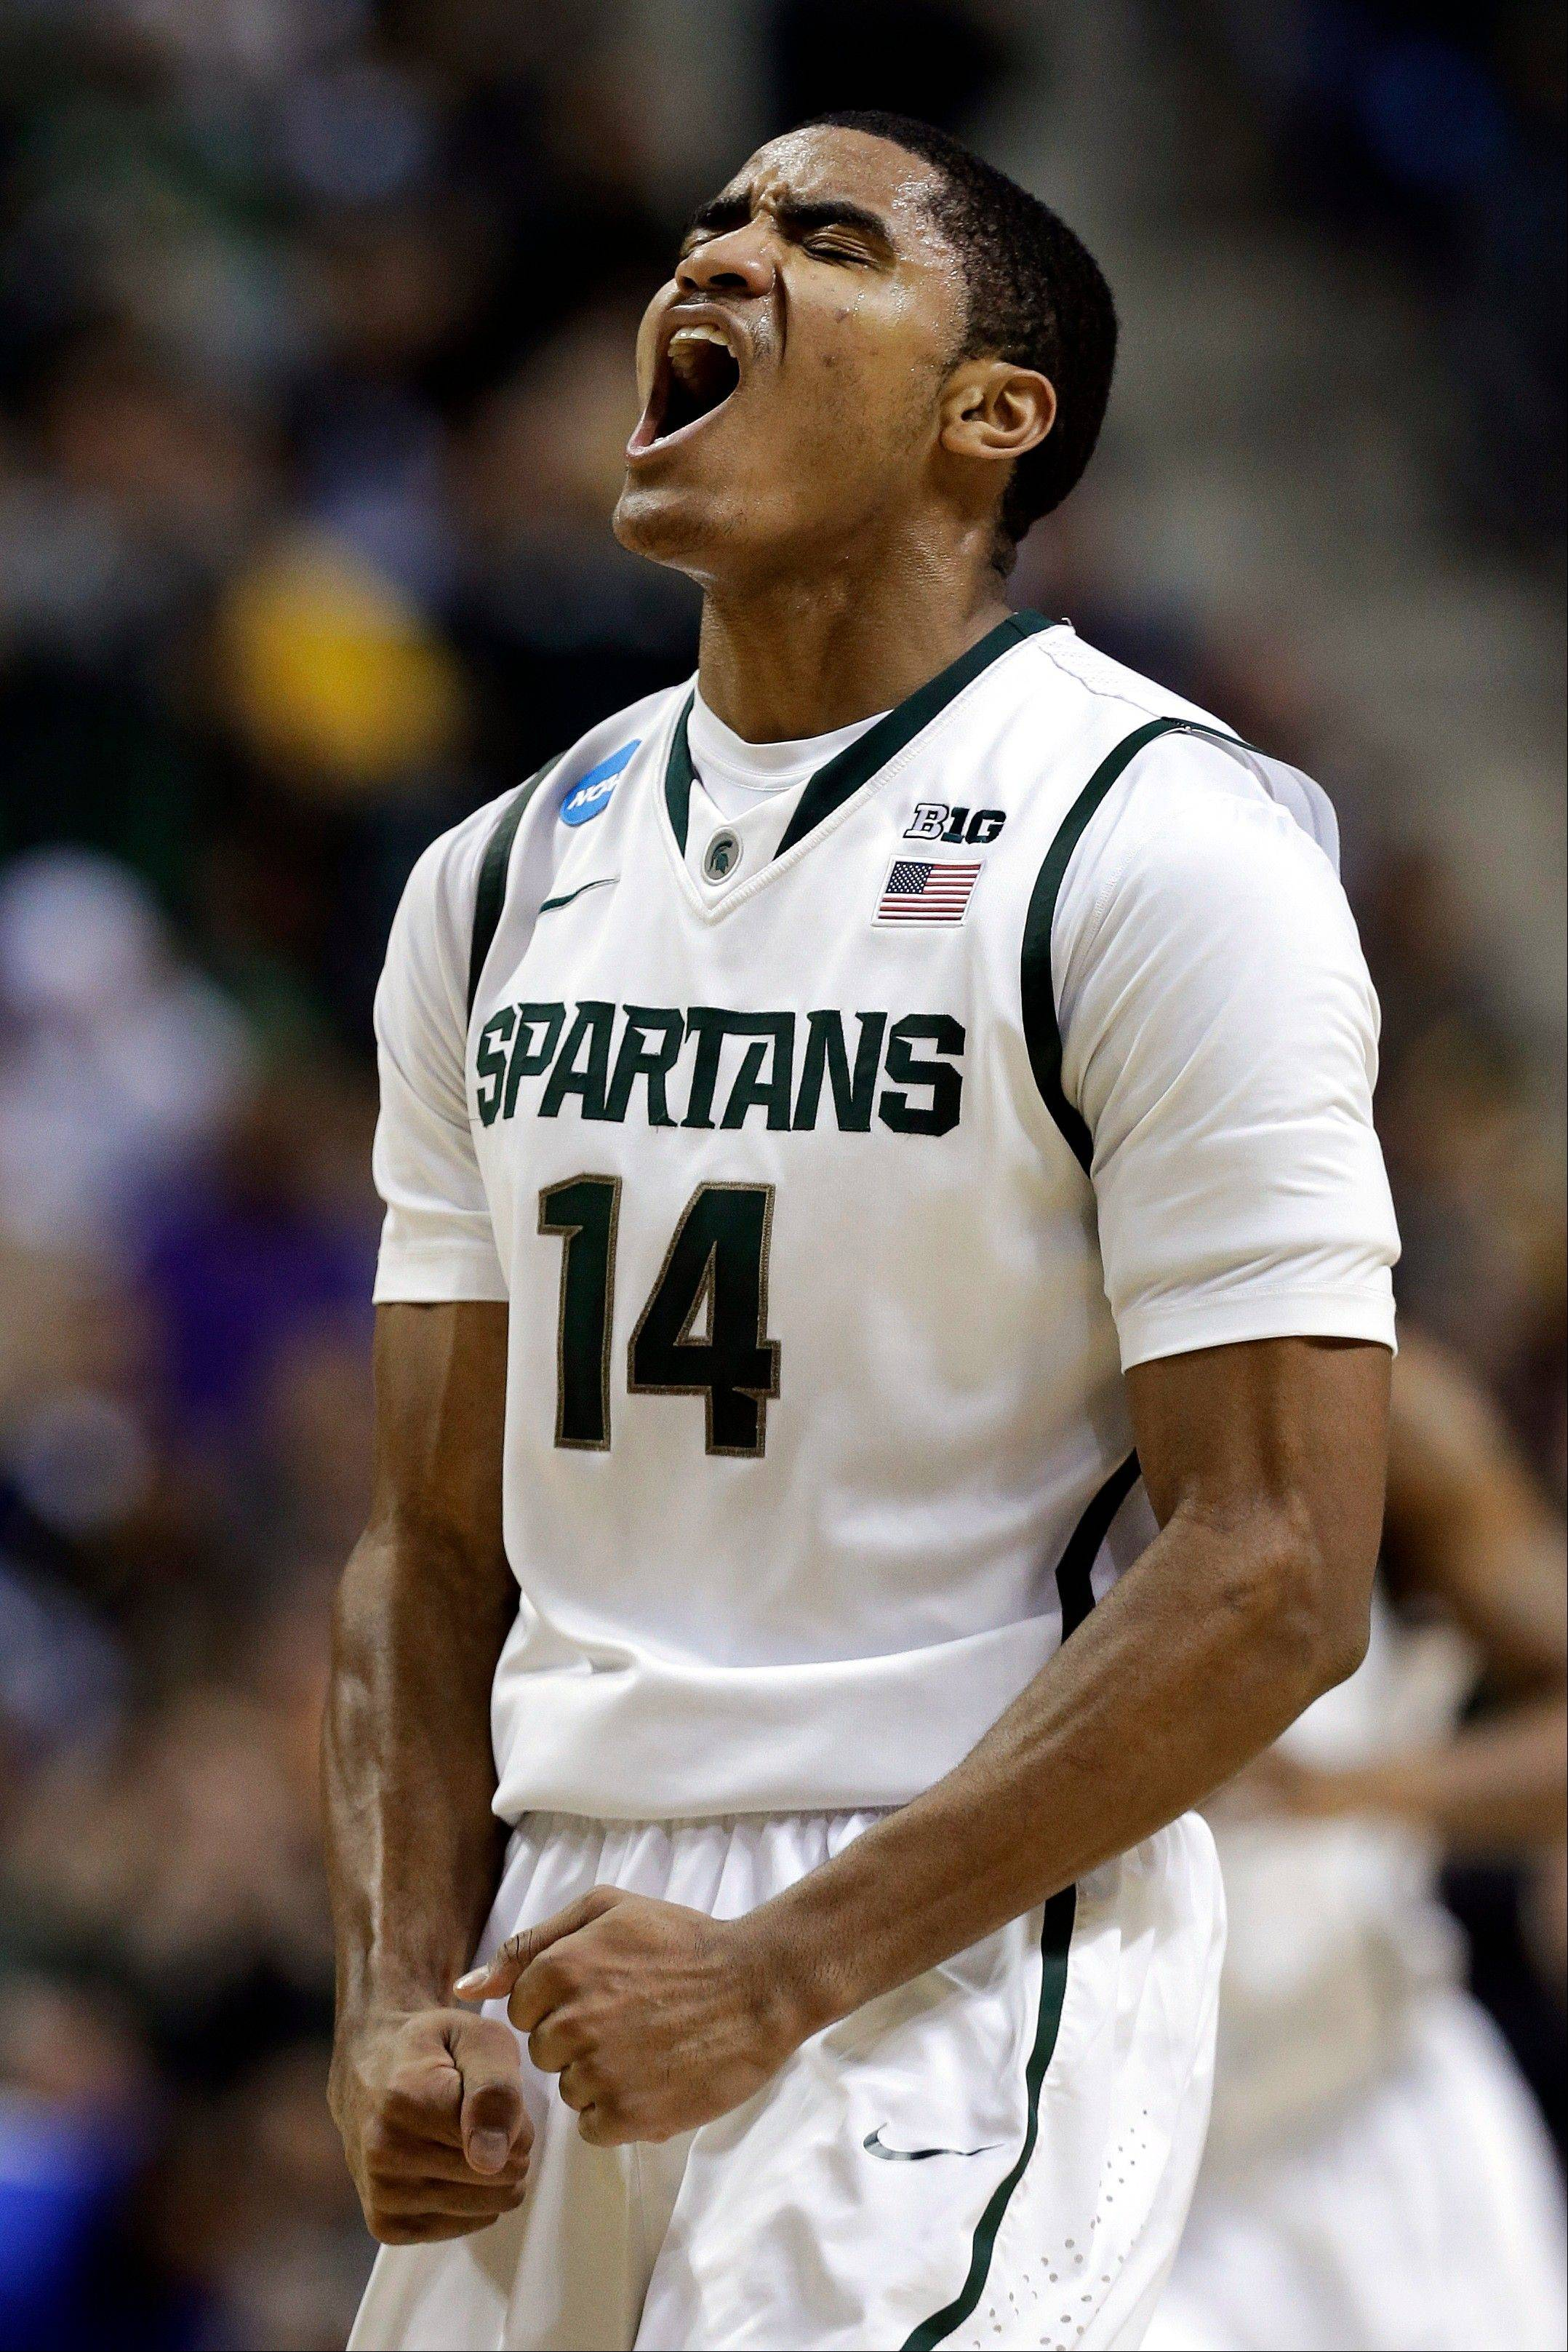 Michigan State guard Gary Harris reacts to hitting a 3-pointer against Memphis in the first half of their third-round game of the NCAA college basketball tournament in Auburn Hills, Mich., Saturday March 23, 2013. (AP Photo/Paul Sancya)